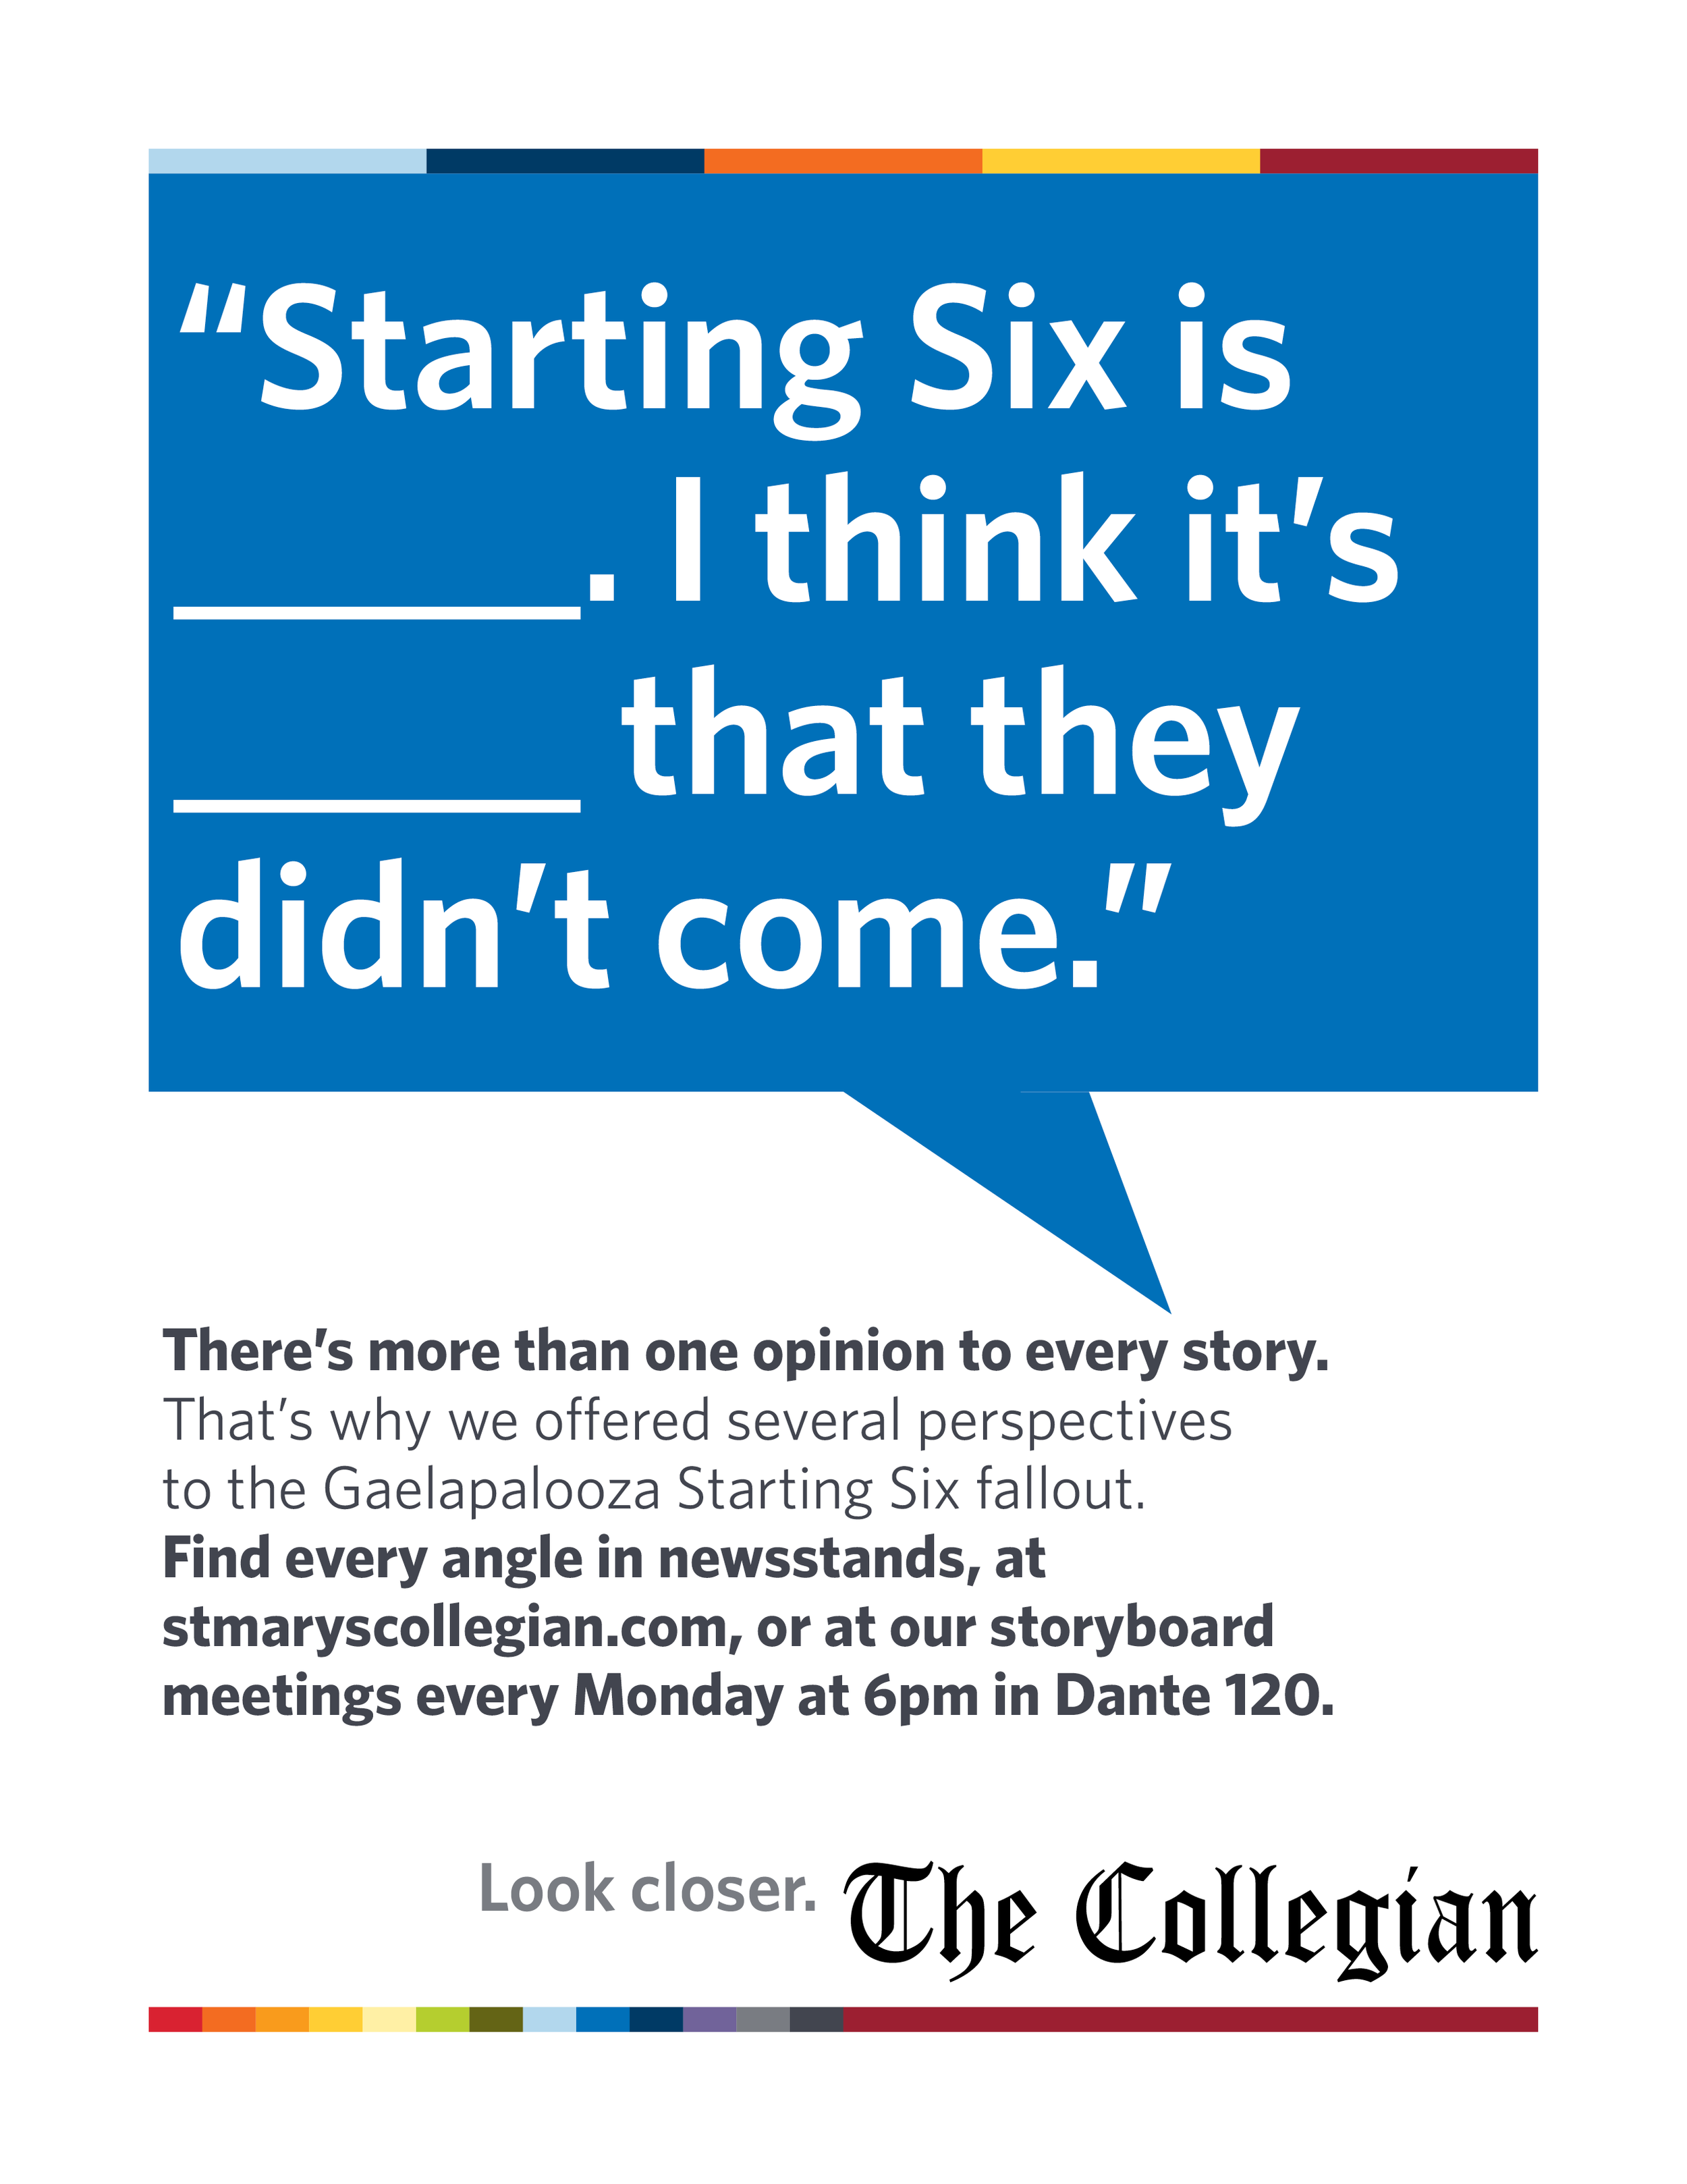 Collegian-ads-forcfg-dot-com.png